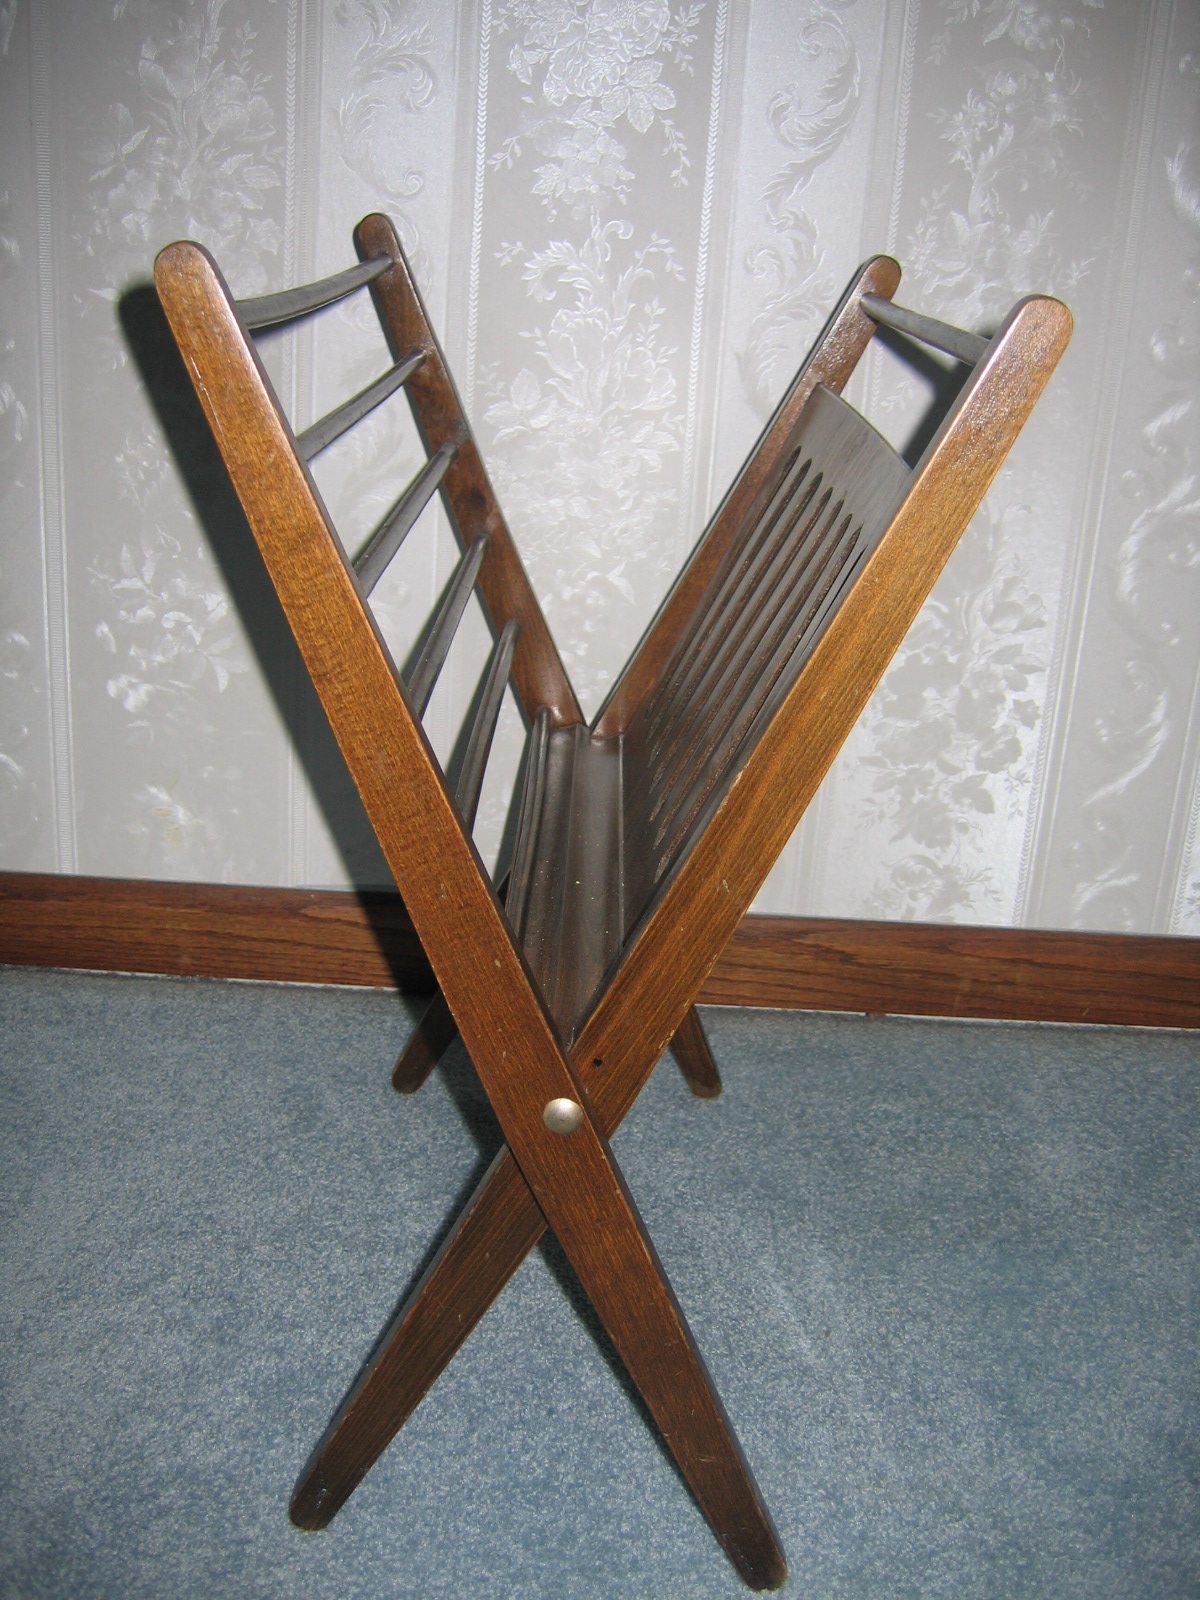 rack wooden dining century home magazine antique chairs also improbable mid of vintage ideas decorating best racks